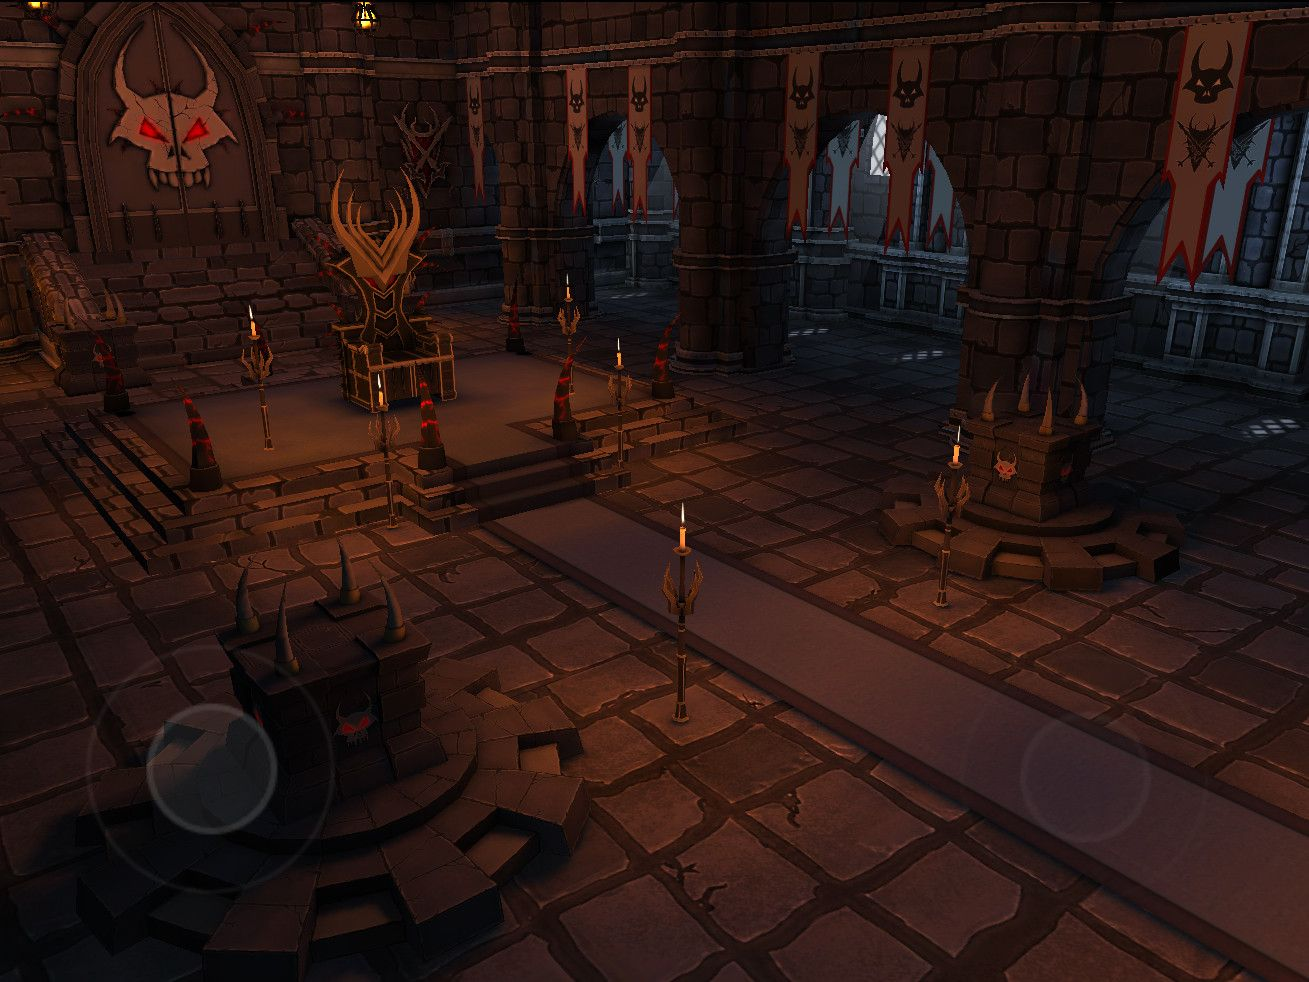 Udk Mobile Demon King S Throne Room Throne Room King On